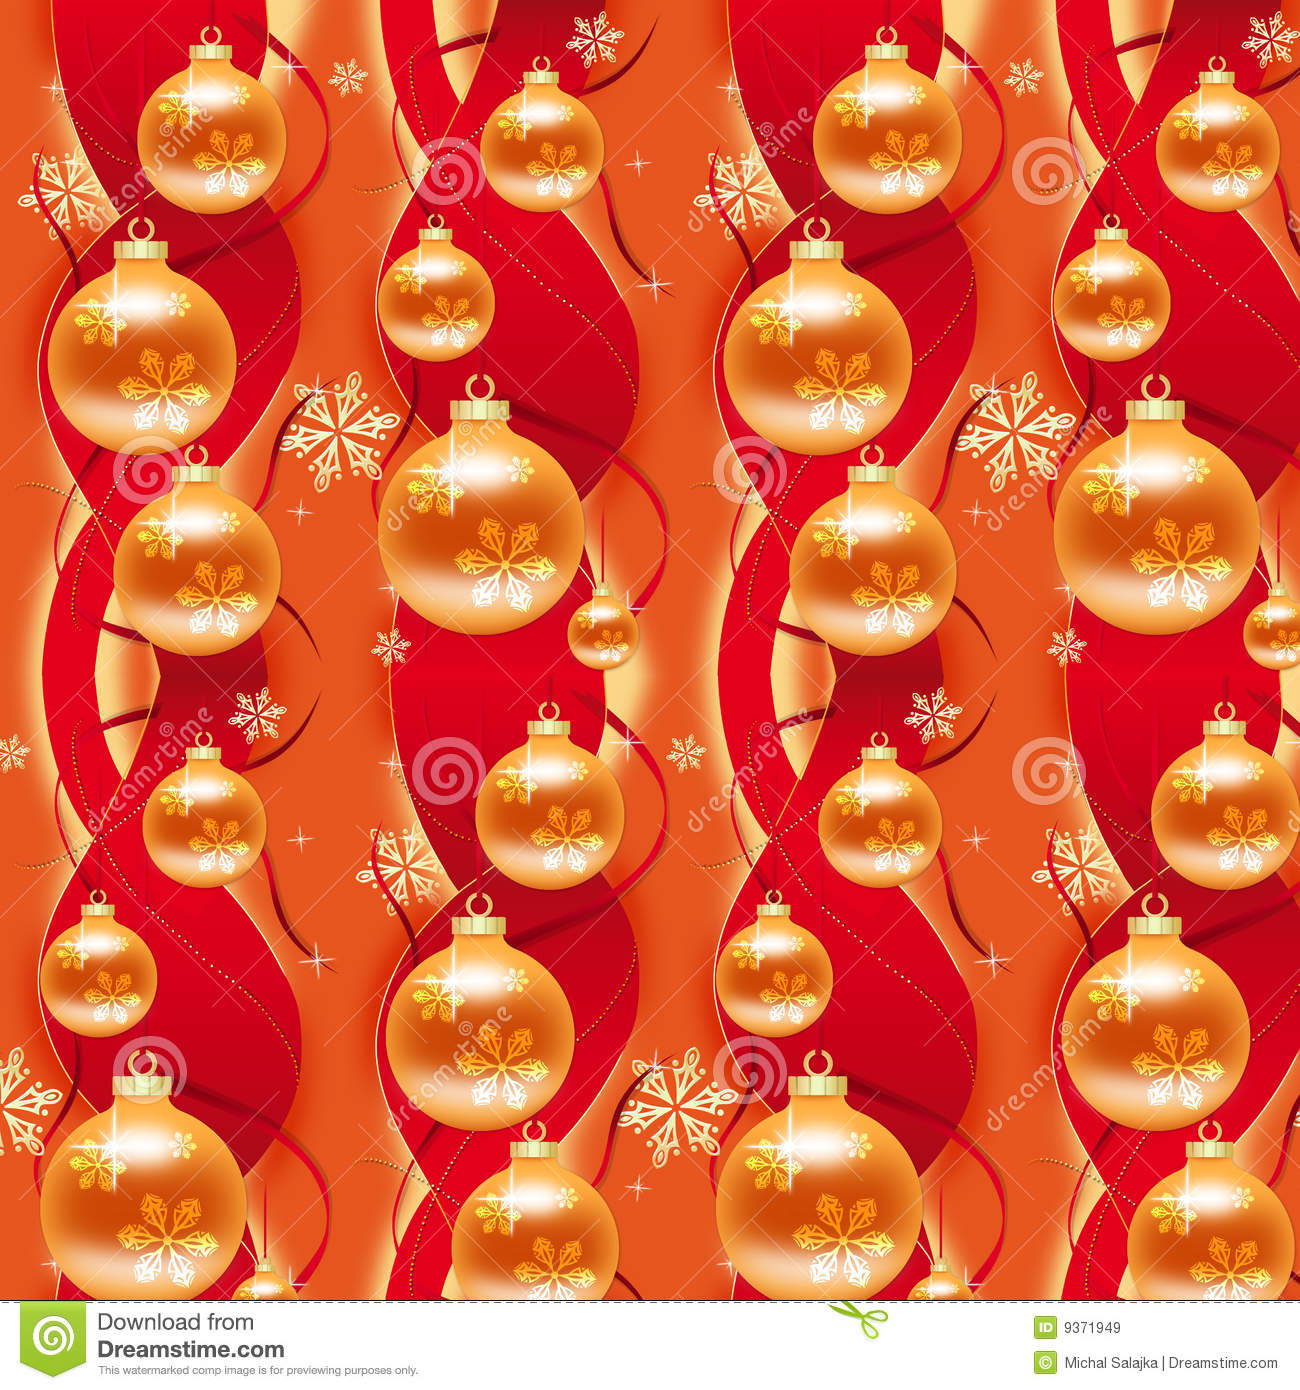 Red And Gold Christmas Wrapping Paper Royalty Free Stock Images ...